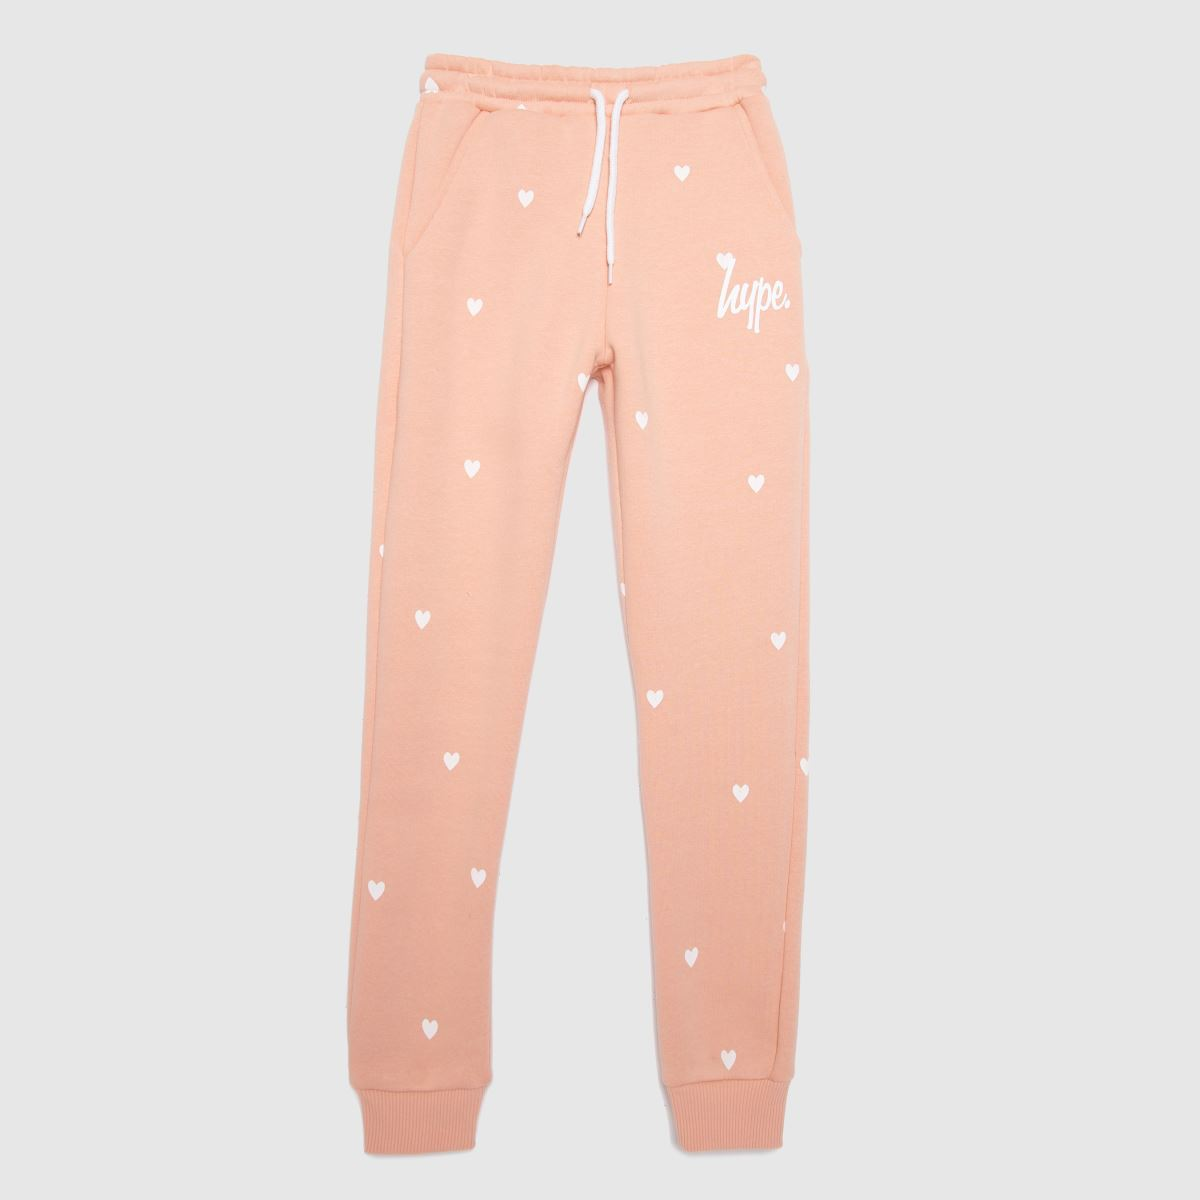 Hype Pale Pink Girls Legging Polka Heart